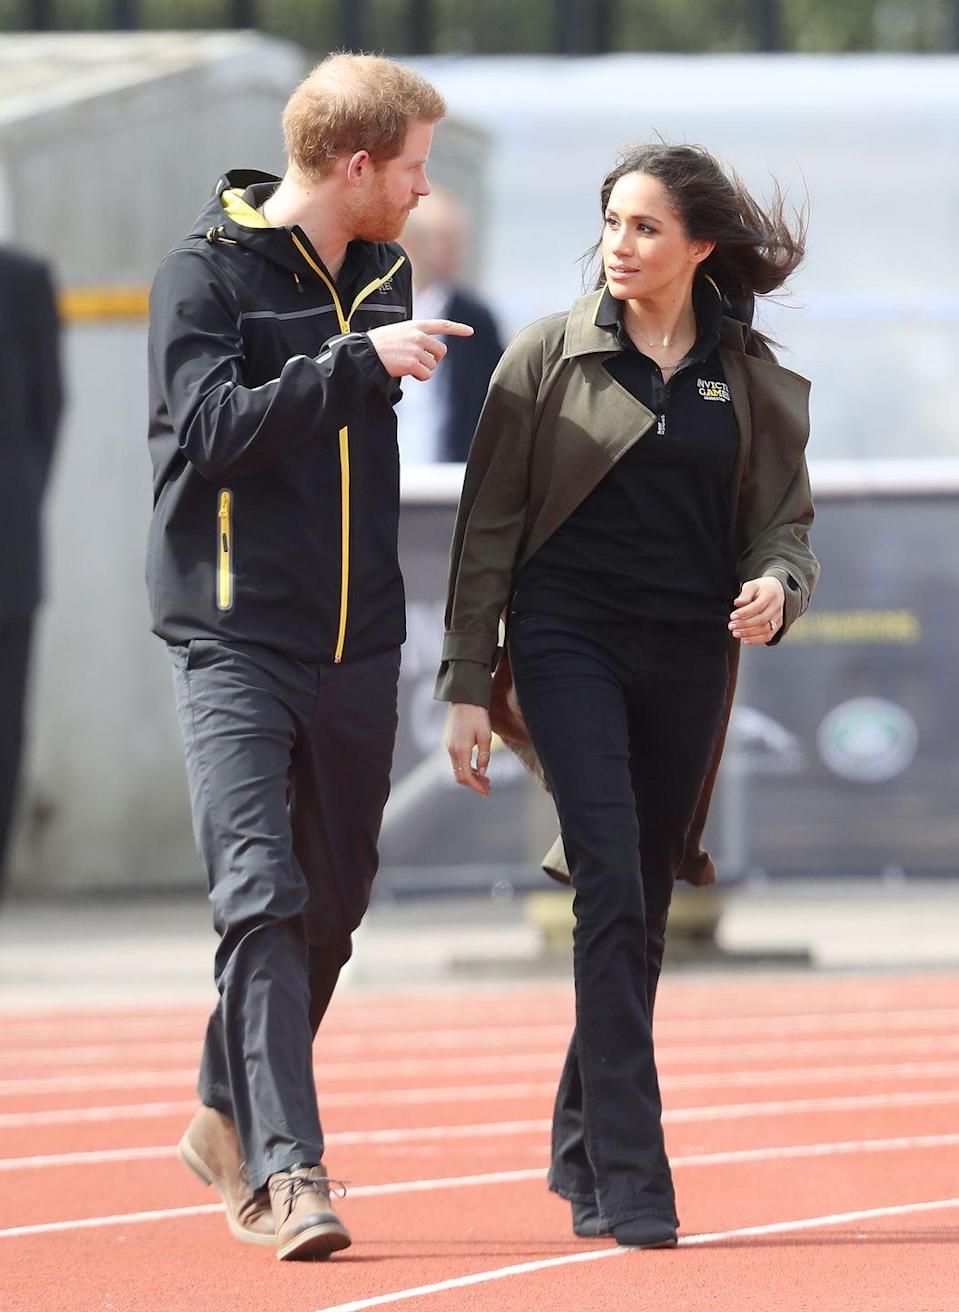 "<p><a href=""https://www.townandcountrymag.com/society/tradition/g19699788/photos-prince-harry-meghan-markles-visit-invictus-games-trials-bath/"" rel=""nofollow noopener"" target=""_blank"" data-ylk=""slk:See all the photos from the day here."" class=""link rapid-noclick-resp"">See all the photos from the day here. </a></p>"